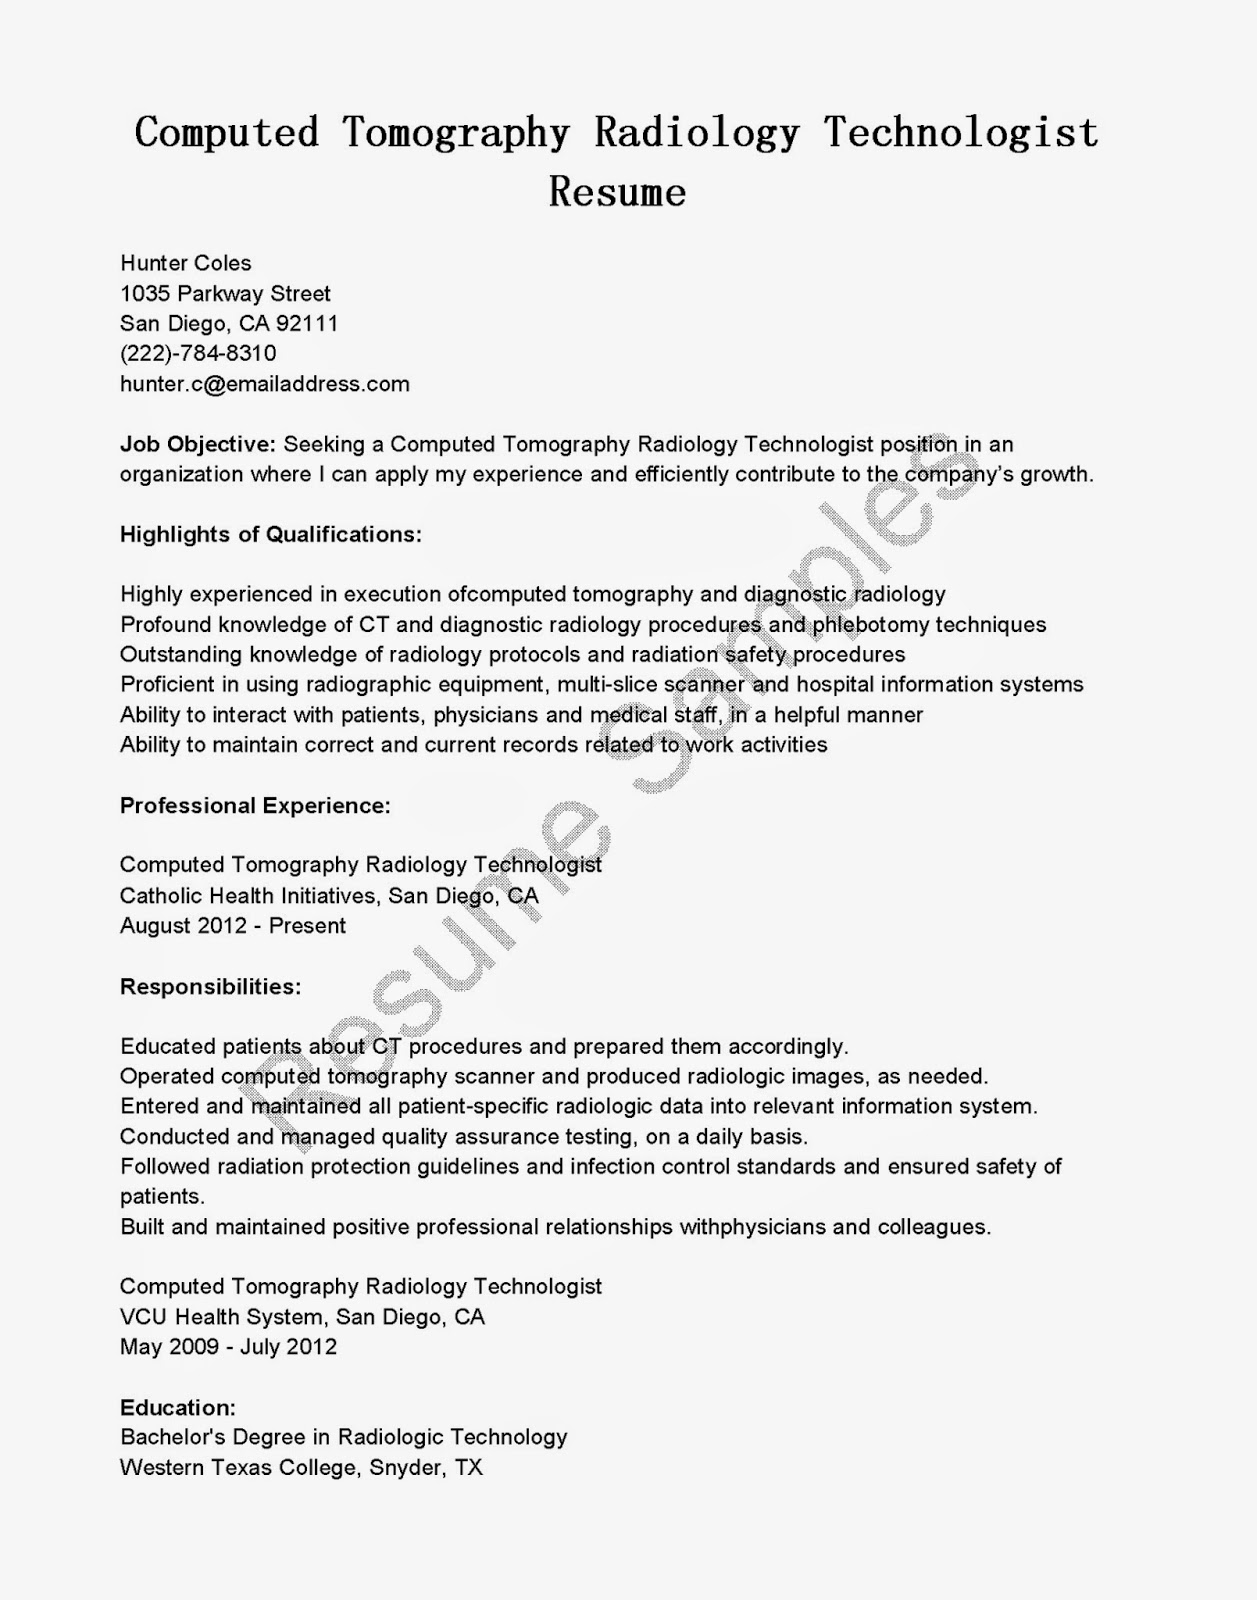 Mailroom Supervisor Resume Ct Tech Resume Examples Resume Ideas